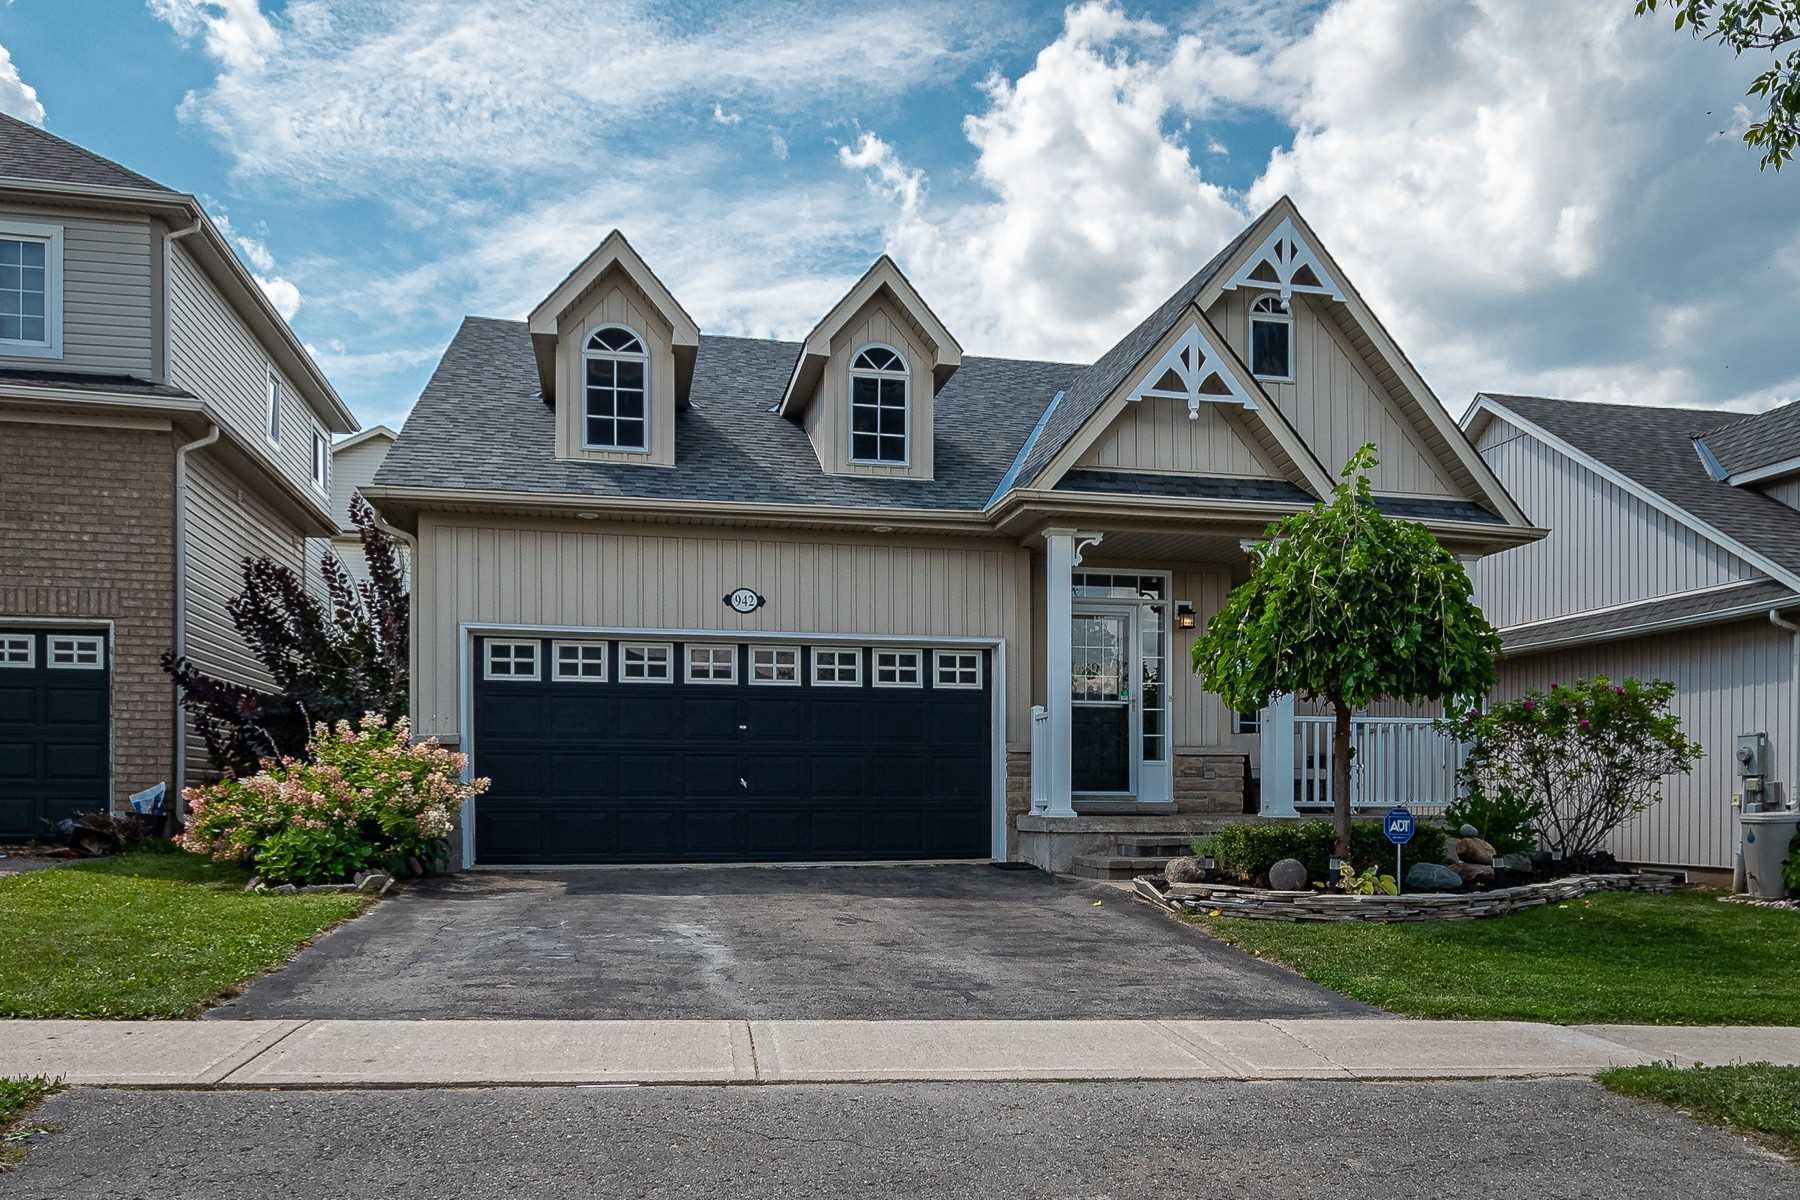 Main Photo: 942 Greenwood Crescent: Shelburne House (Bungalow) for sale : MLS®# X4882478